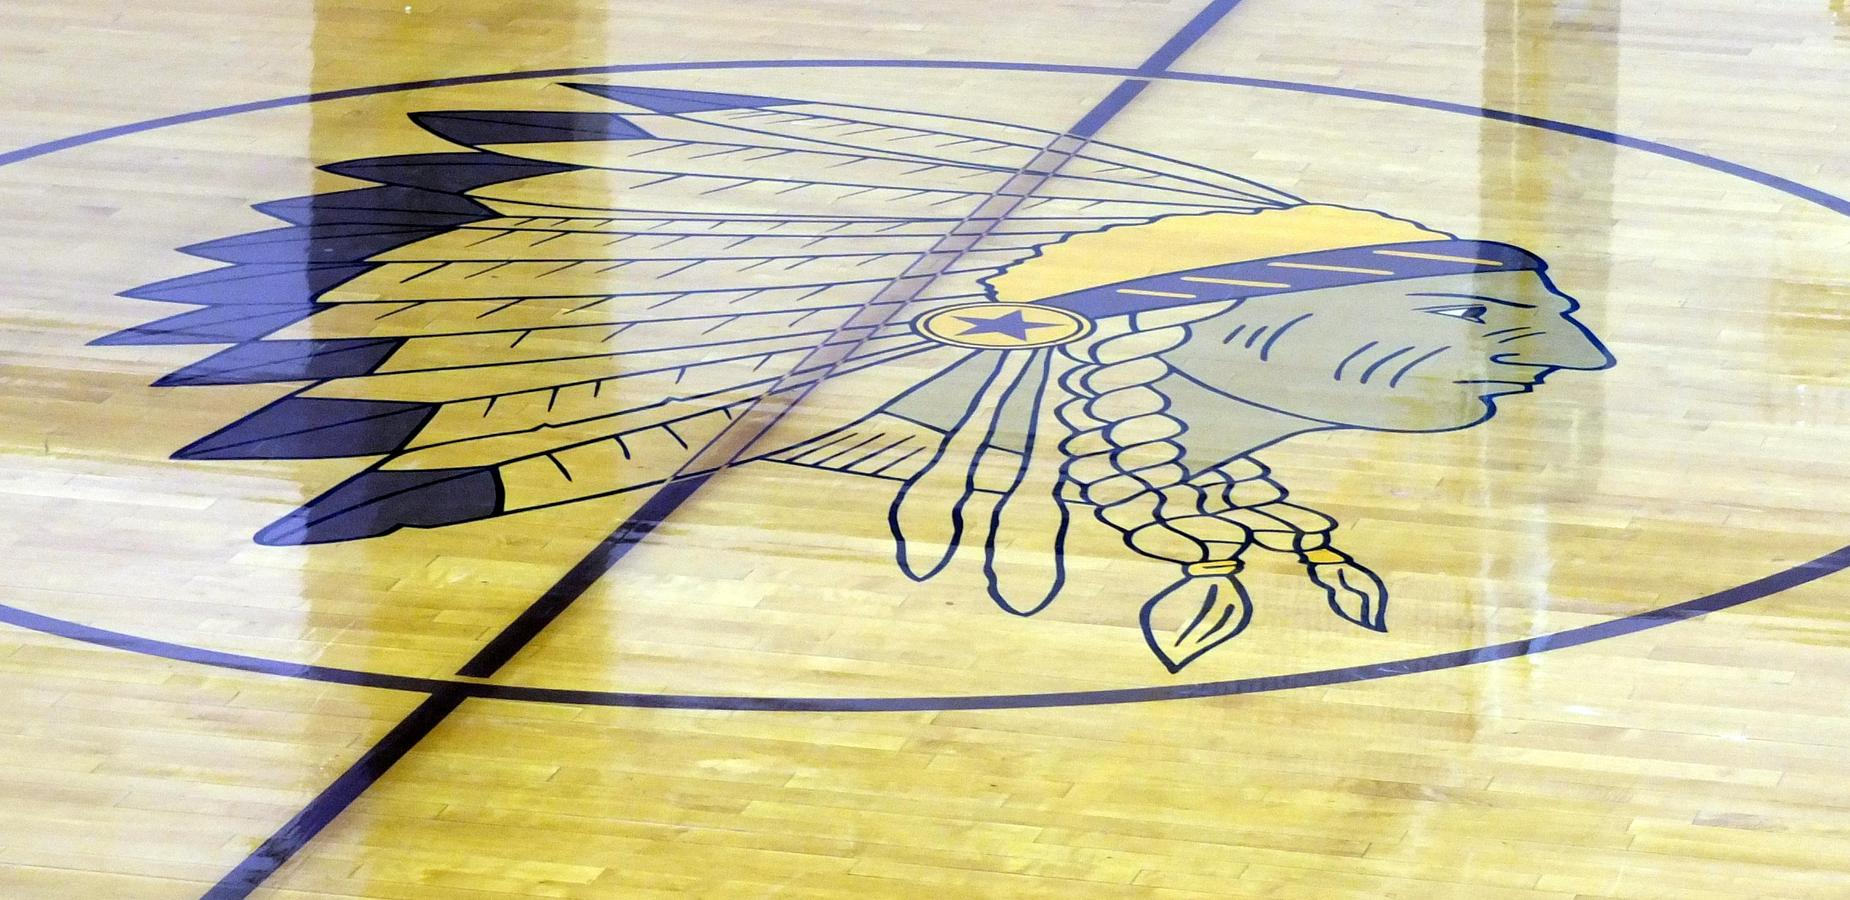 Mosheim Gym Floor